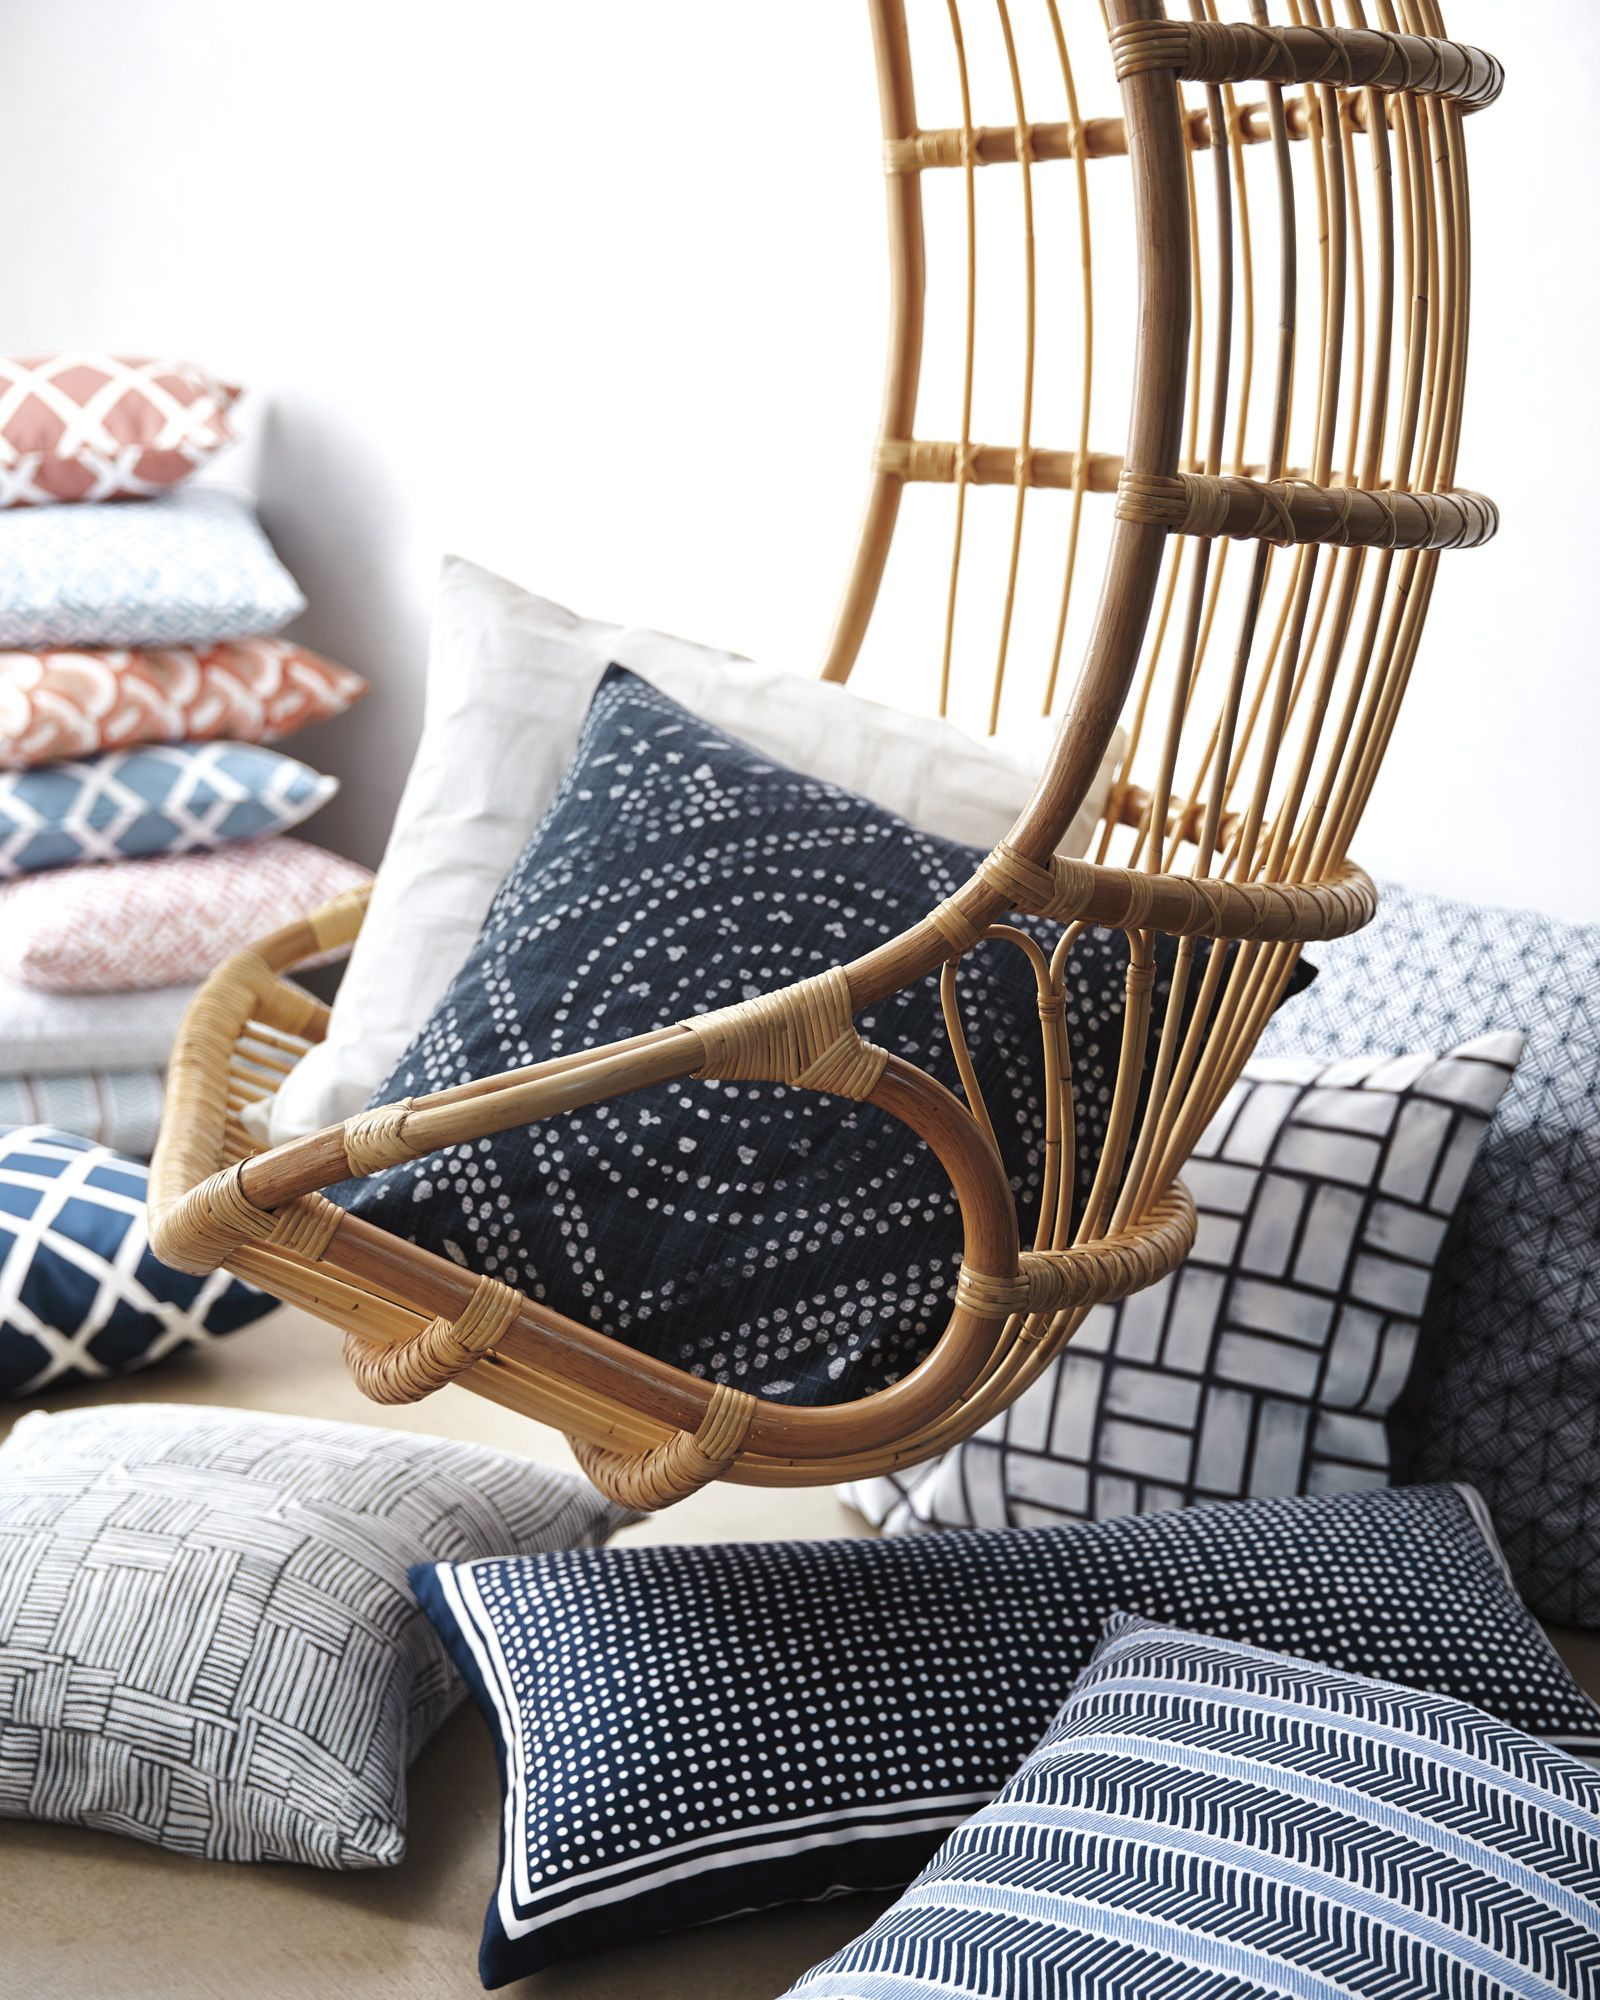 hanging rattan chairhanging rattan chair serena and lily- to style